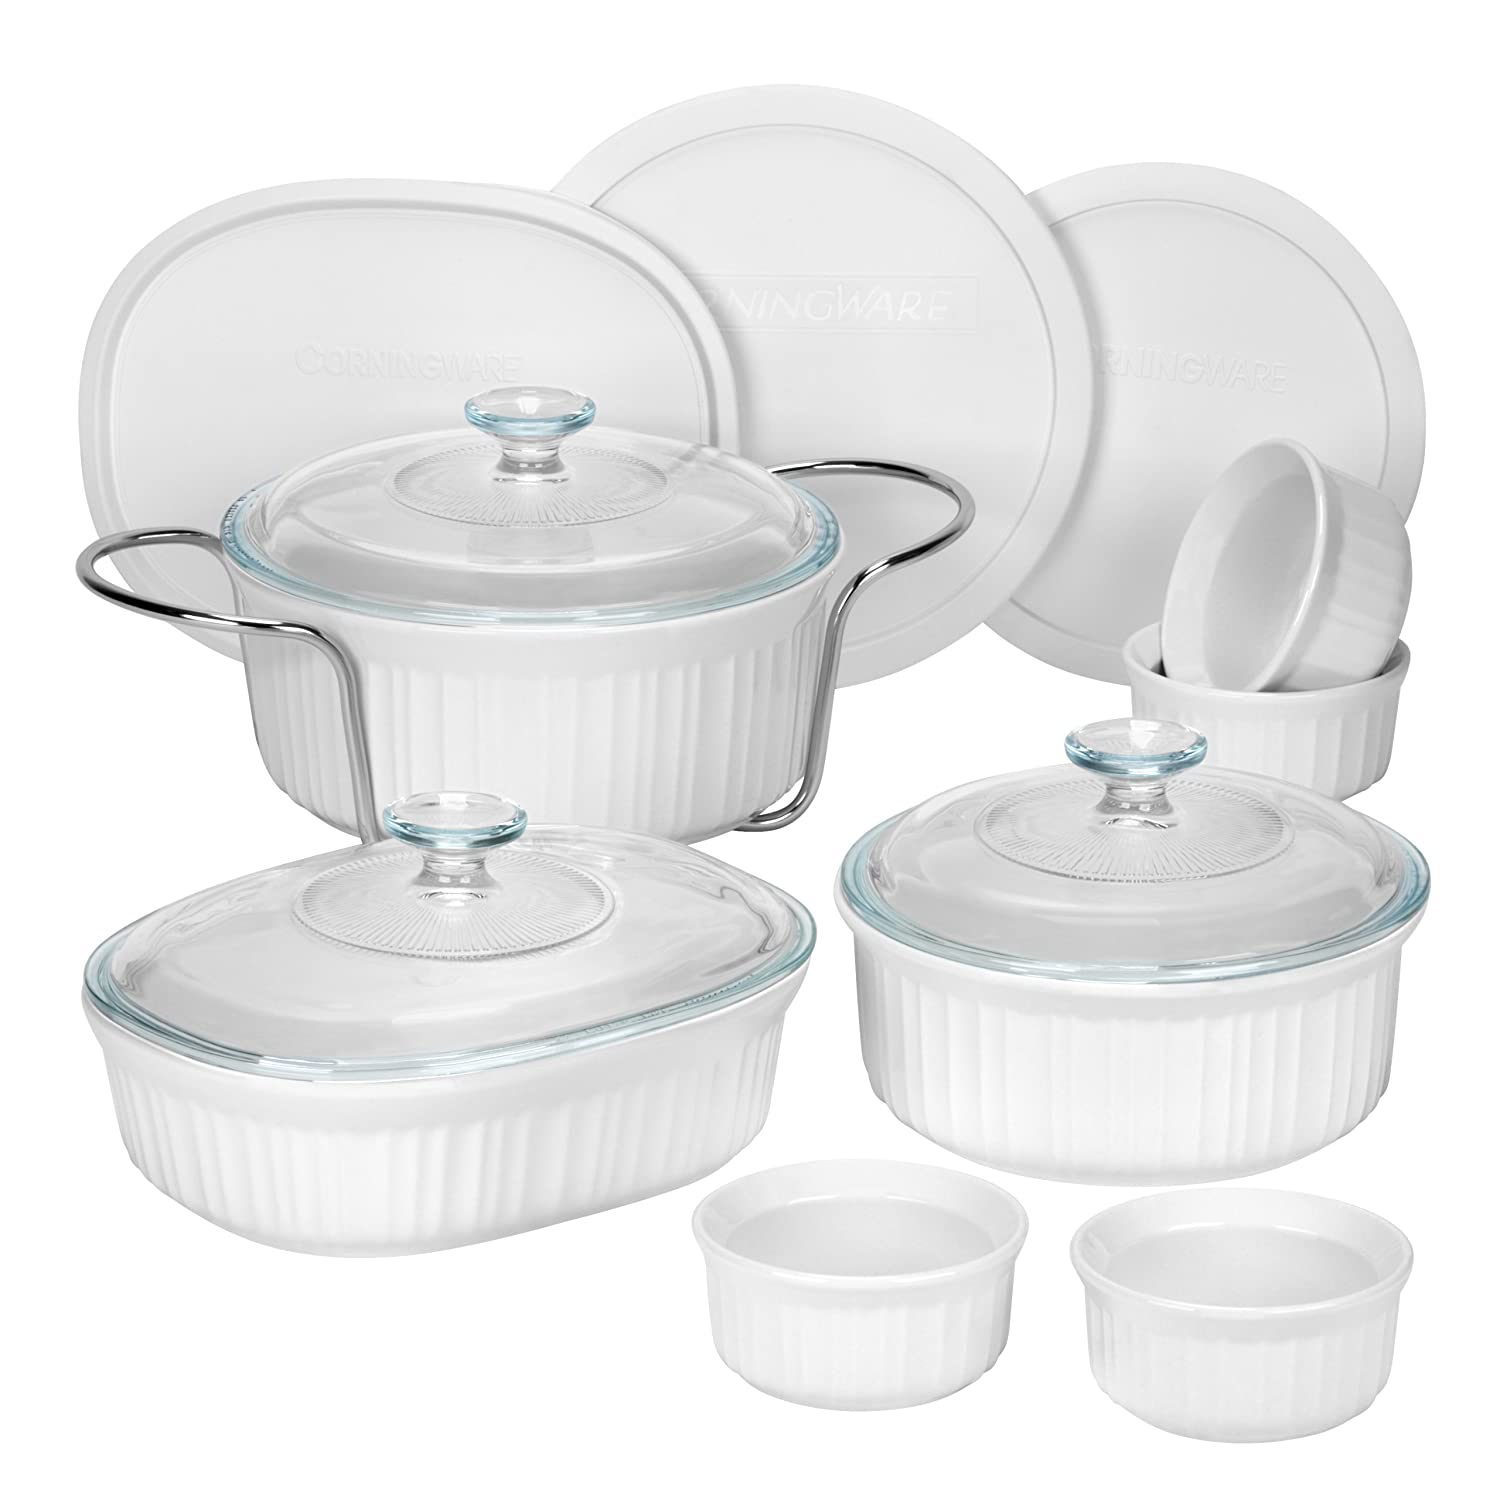 CorningWare 1083955 French 14-Piece Bakeware Set, White World Kitchen (PA)